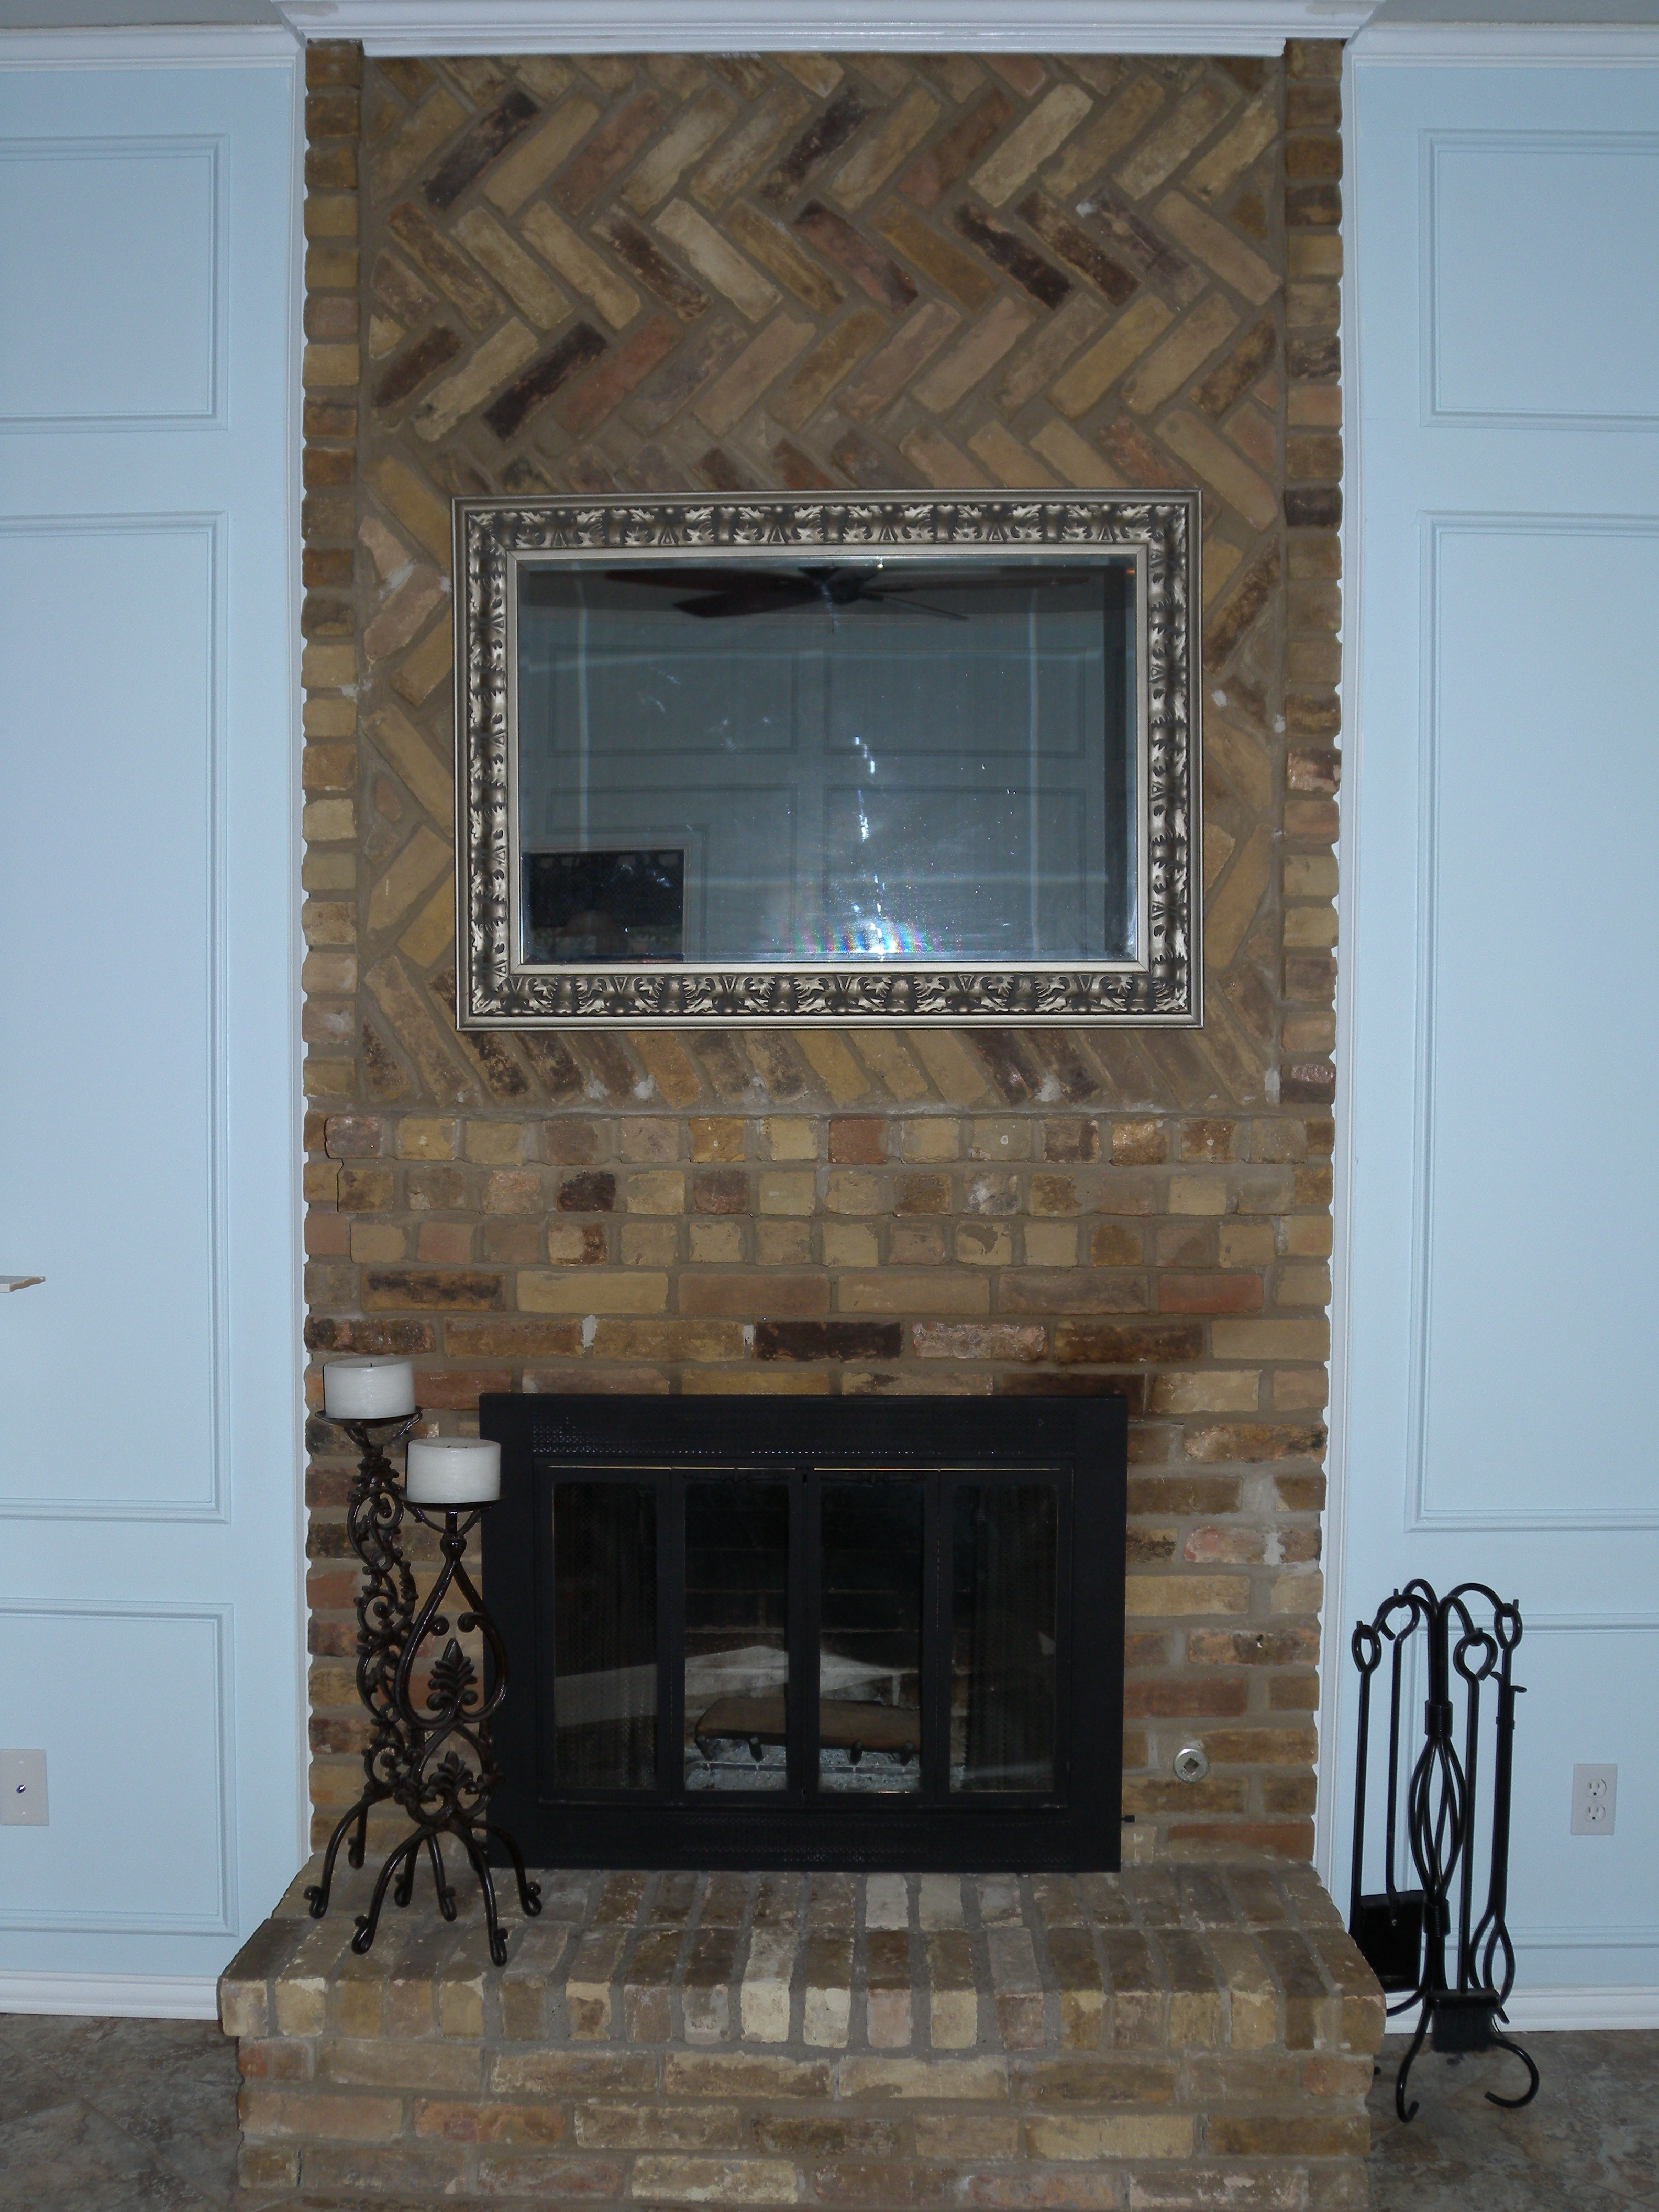 Build A Fireplace Dear Internet, Here's How To Build A Fireplace Mantel | Do